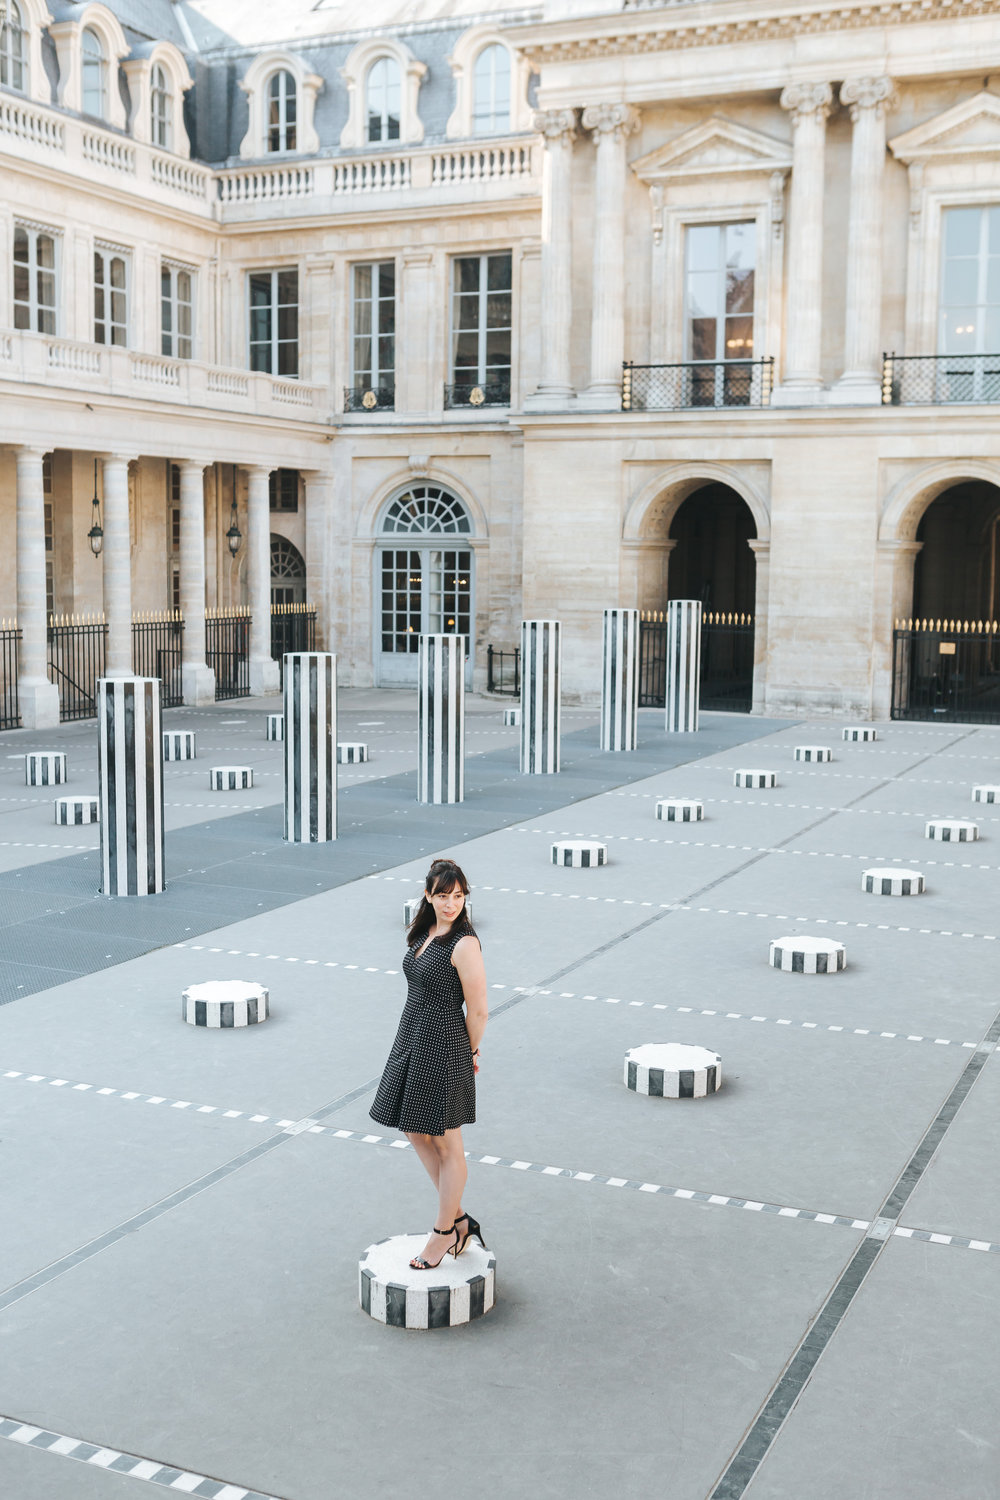 rebecca plotnick in palais royal paris, france photo by iheartparisfr